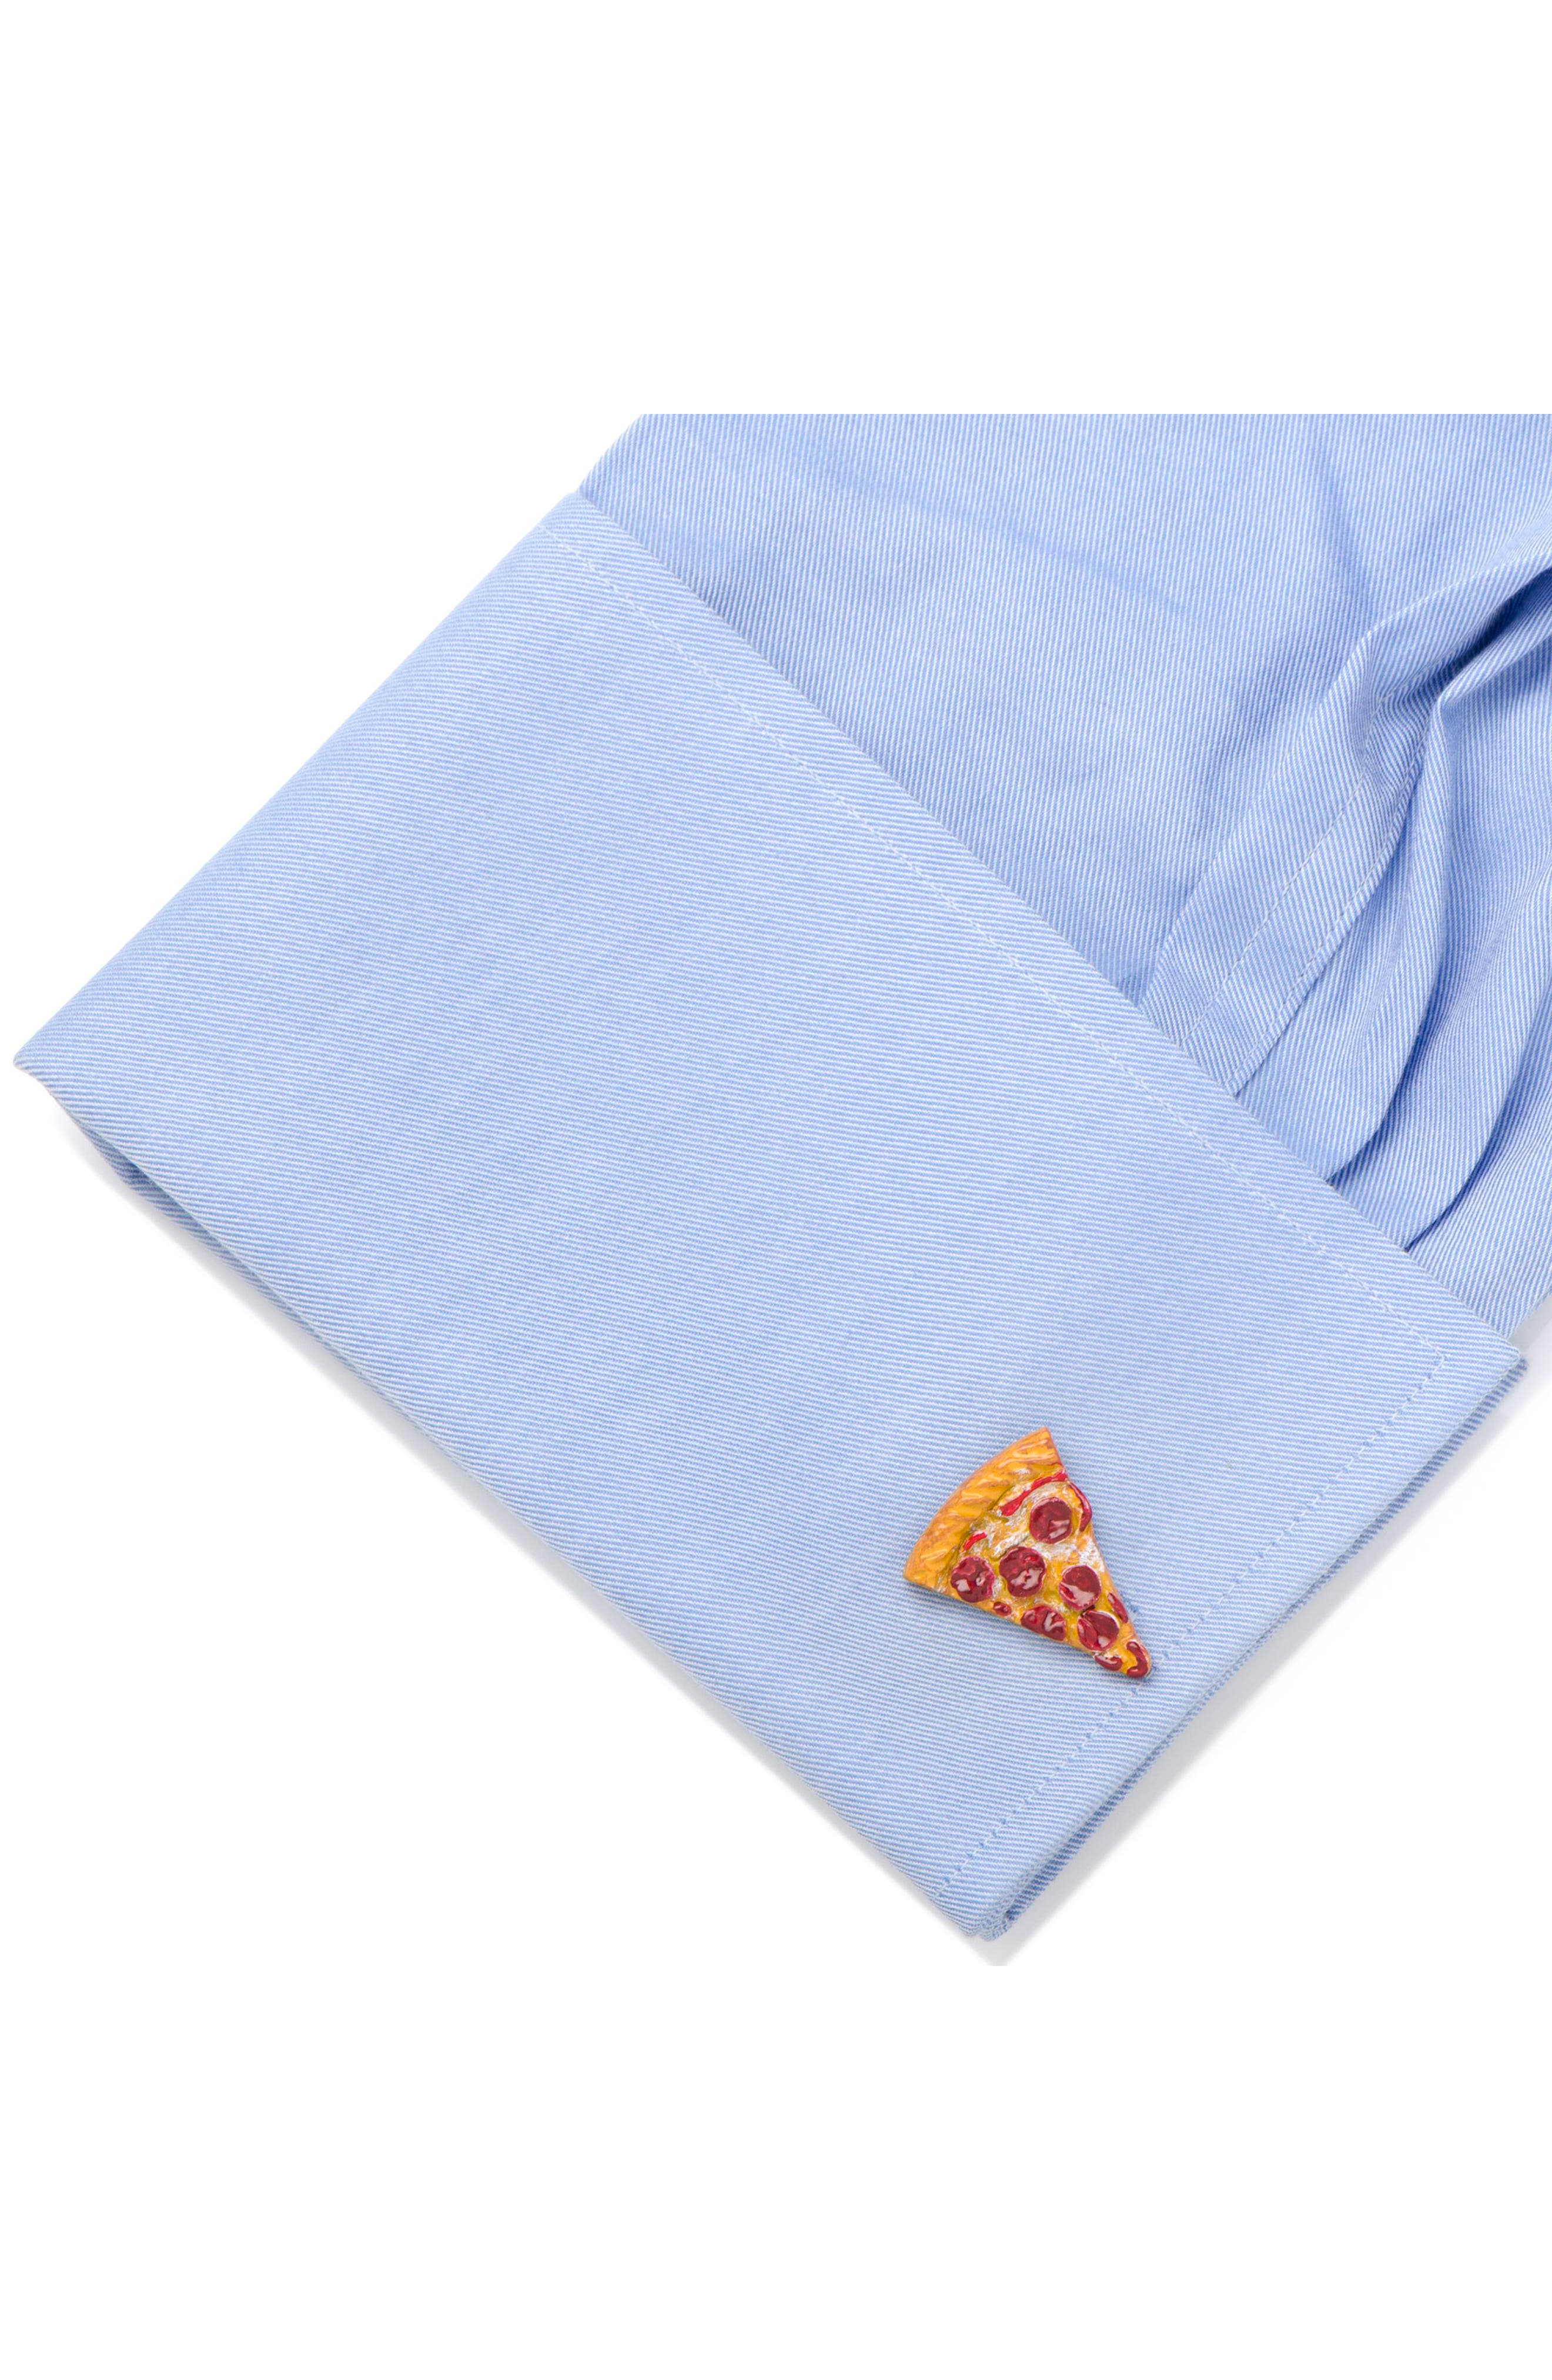 3D Pizza Slice Cuff Links,                             Alternate thumbnail 3, color,                             Red